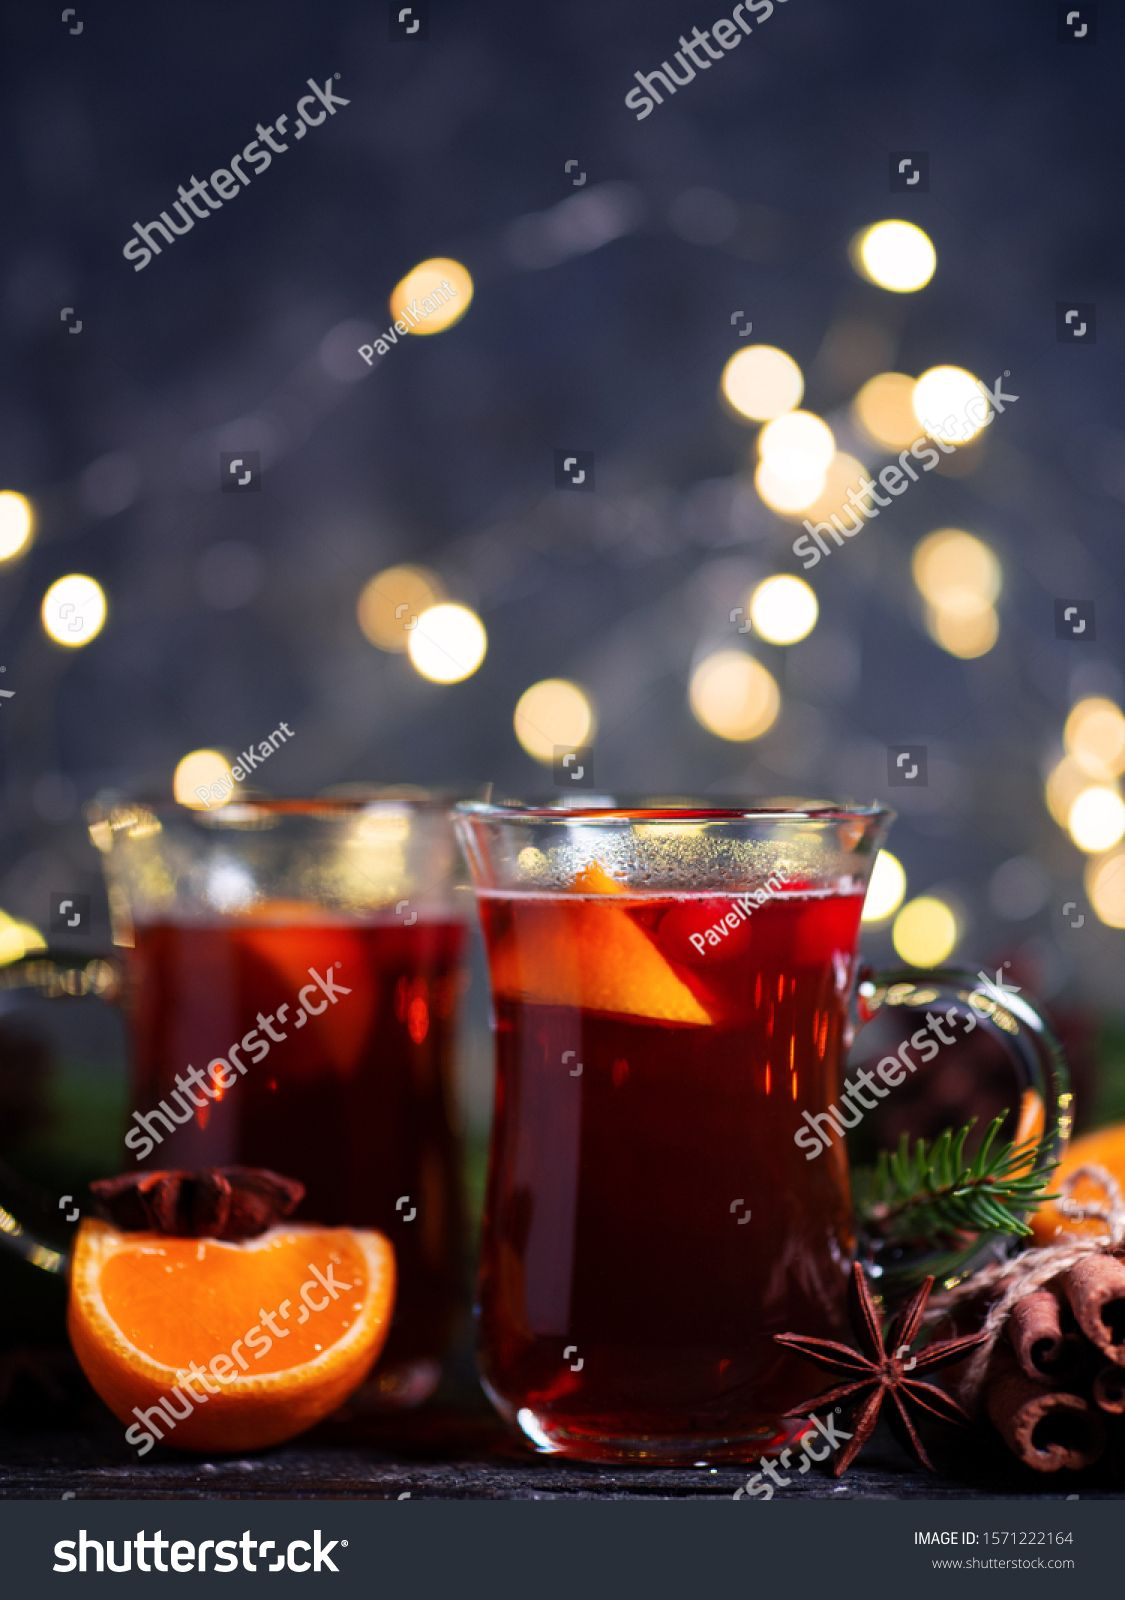 Christmas Winter Mulled Wine From Red Wine With Spices And Fruit Tangerines With Cinnamon Traditional Alcoholic Hot Dri Mulled Wine Mulled Mulled Apple Cider